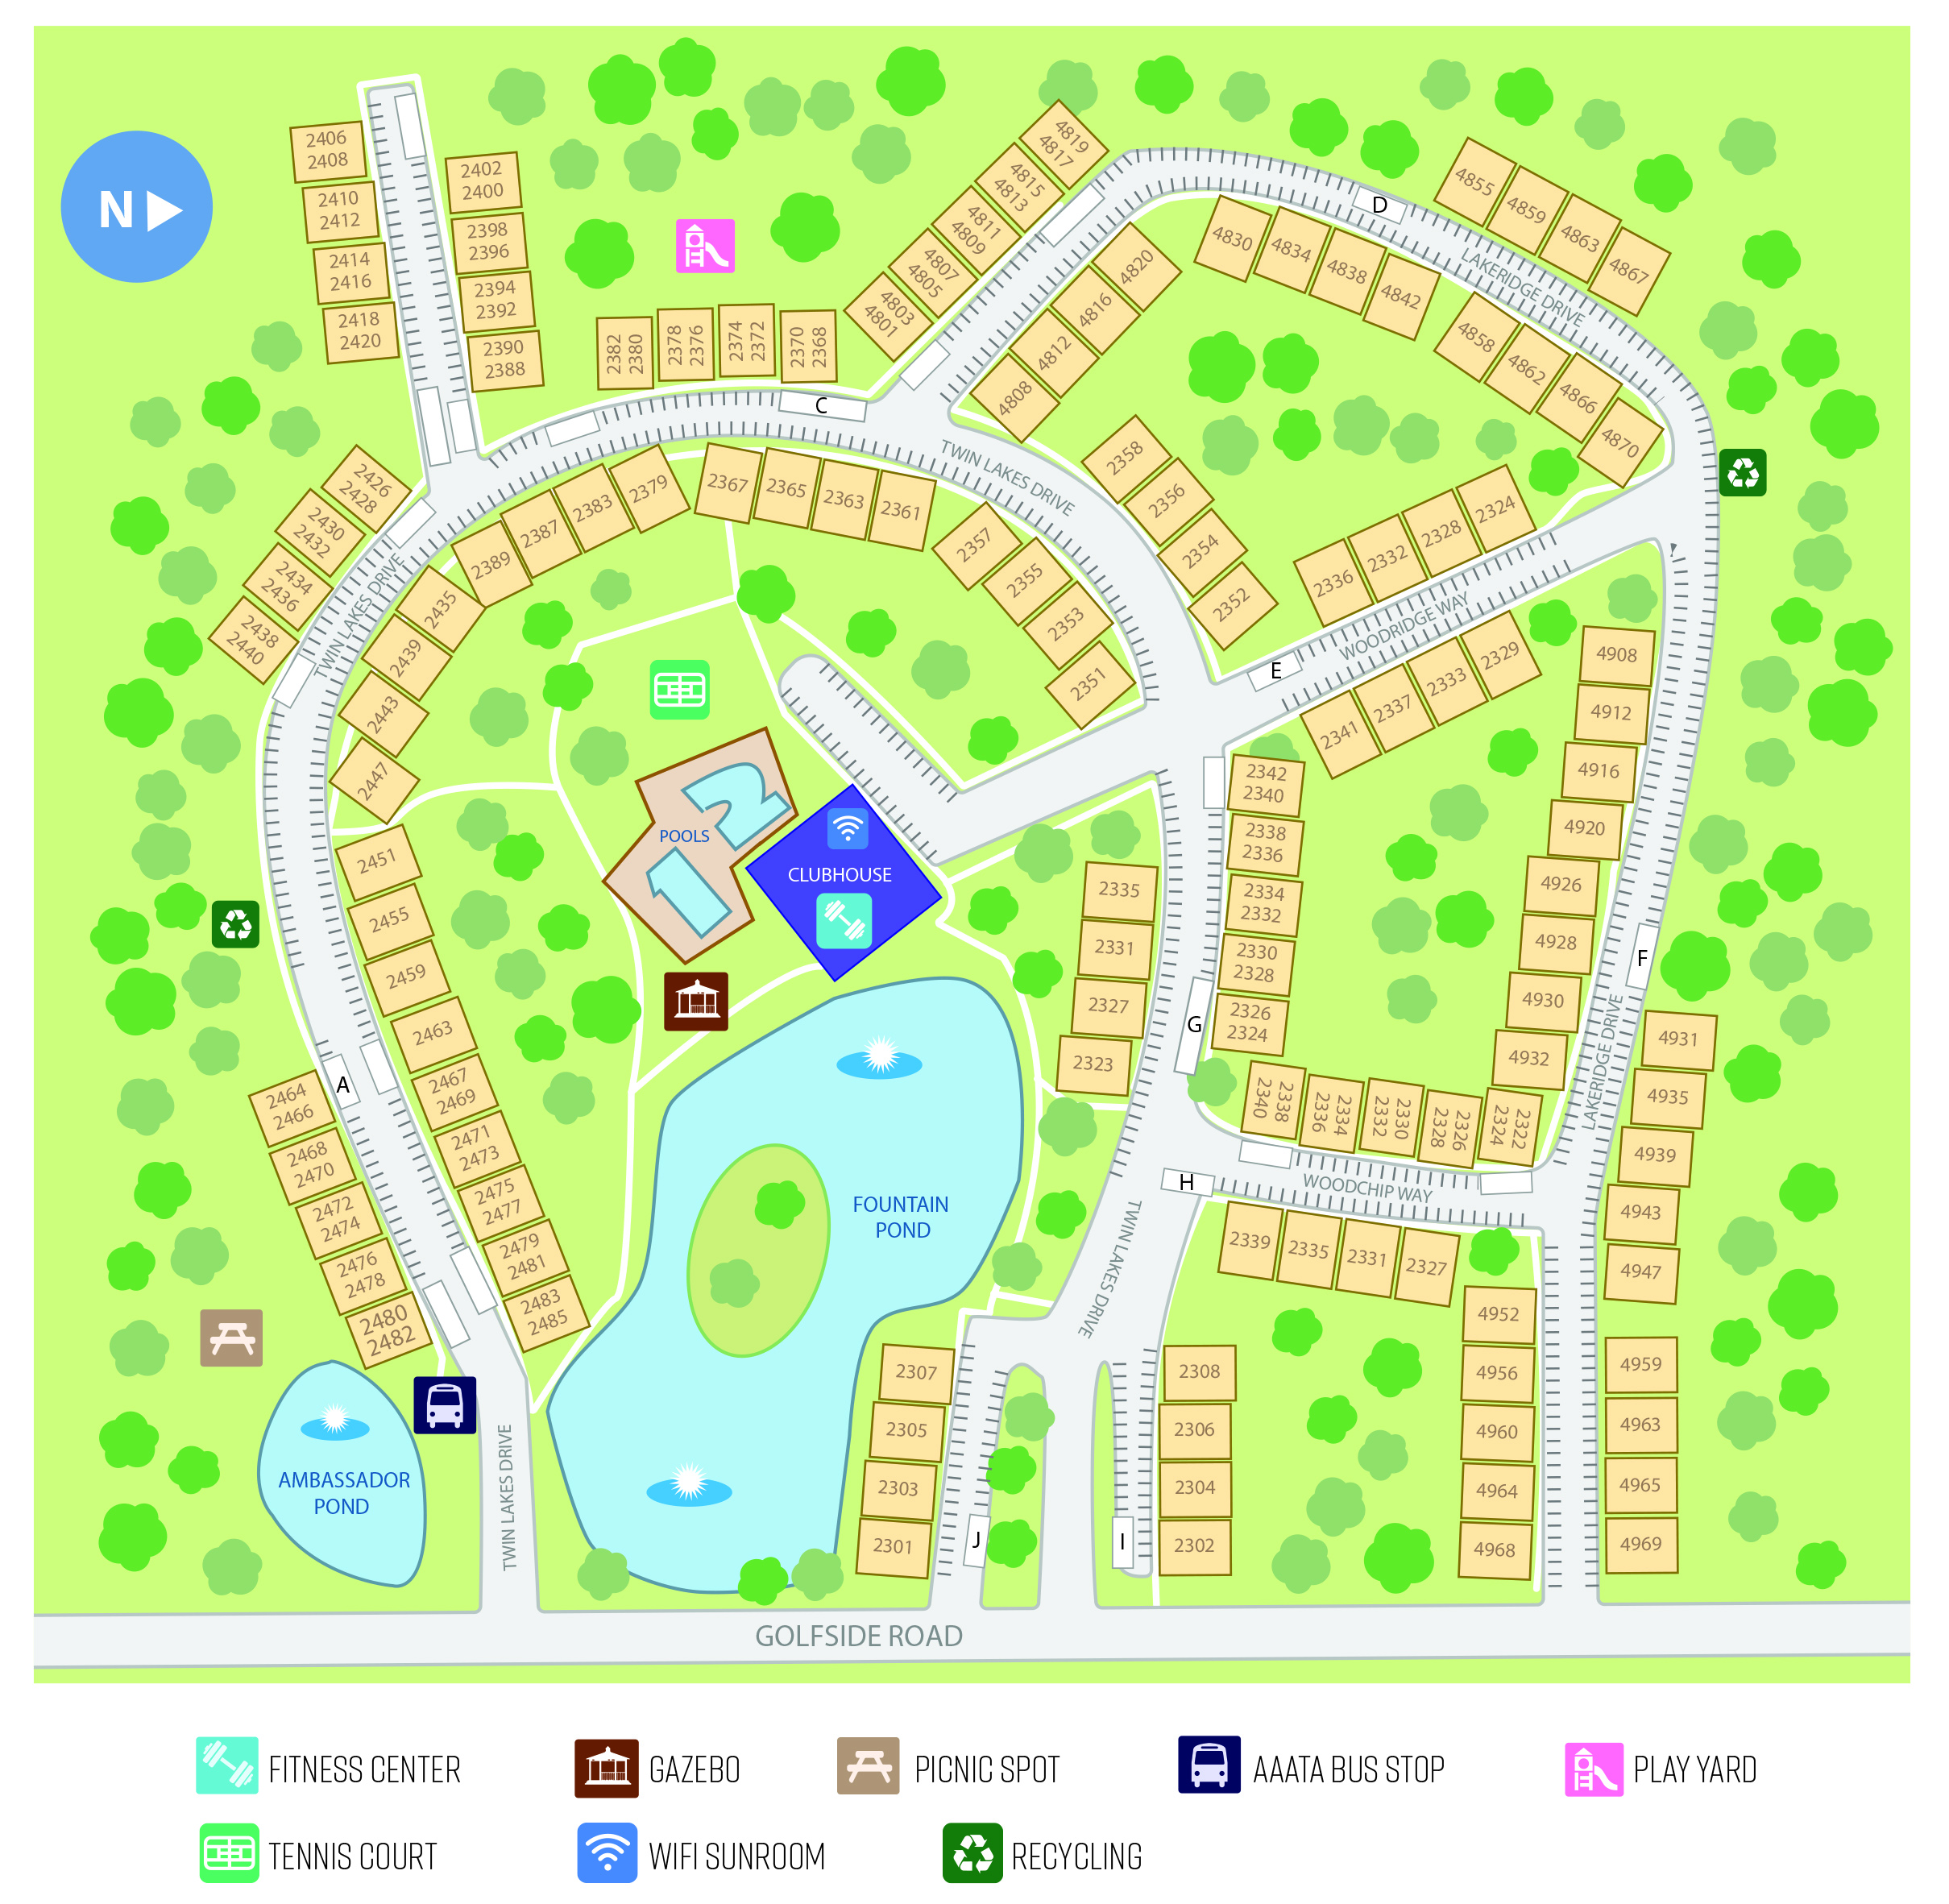 Gsl-20site-20map